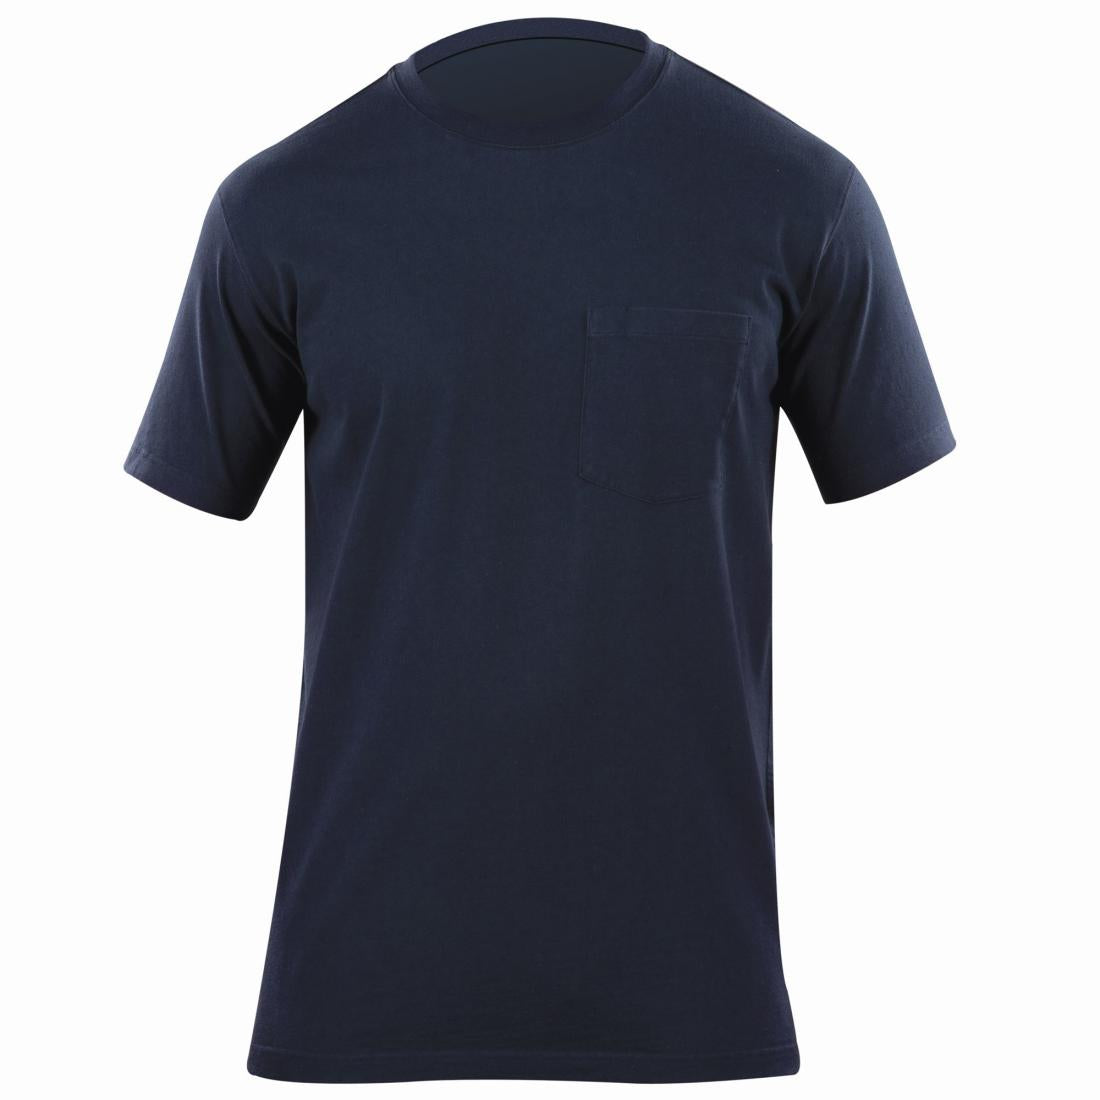 5.11 Tactical 71307 Men Professional Pocketed T-Shirt Fire Navy